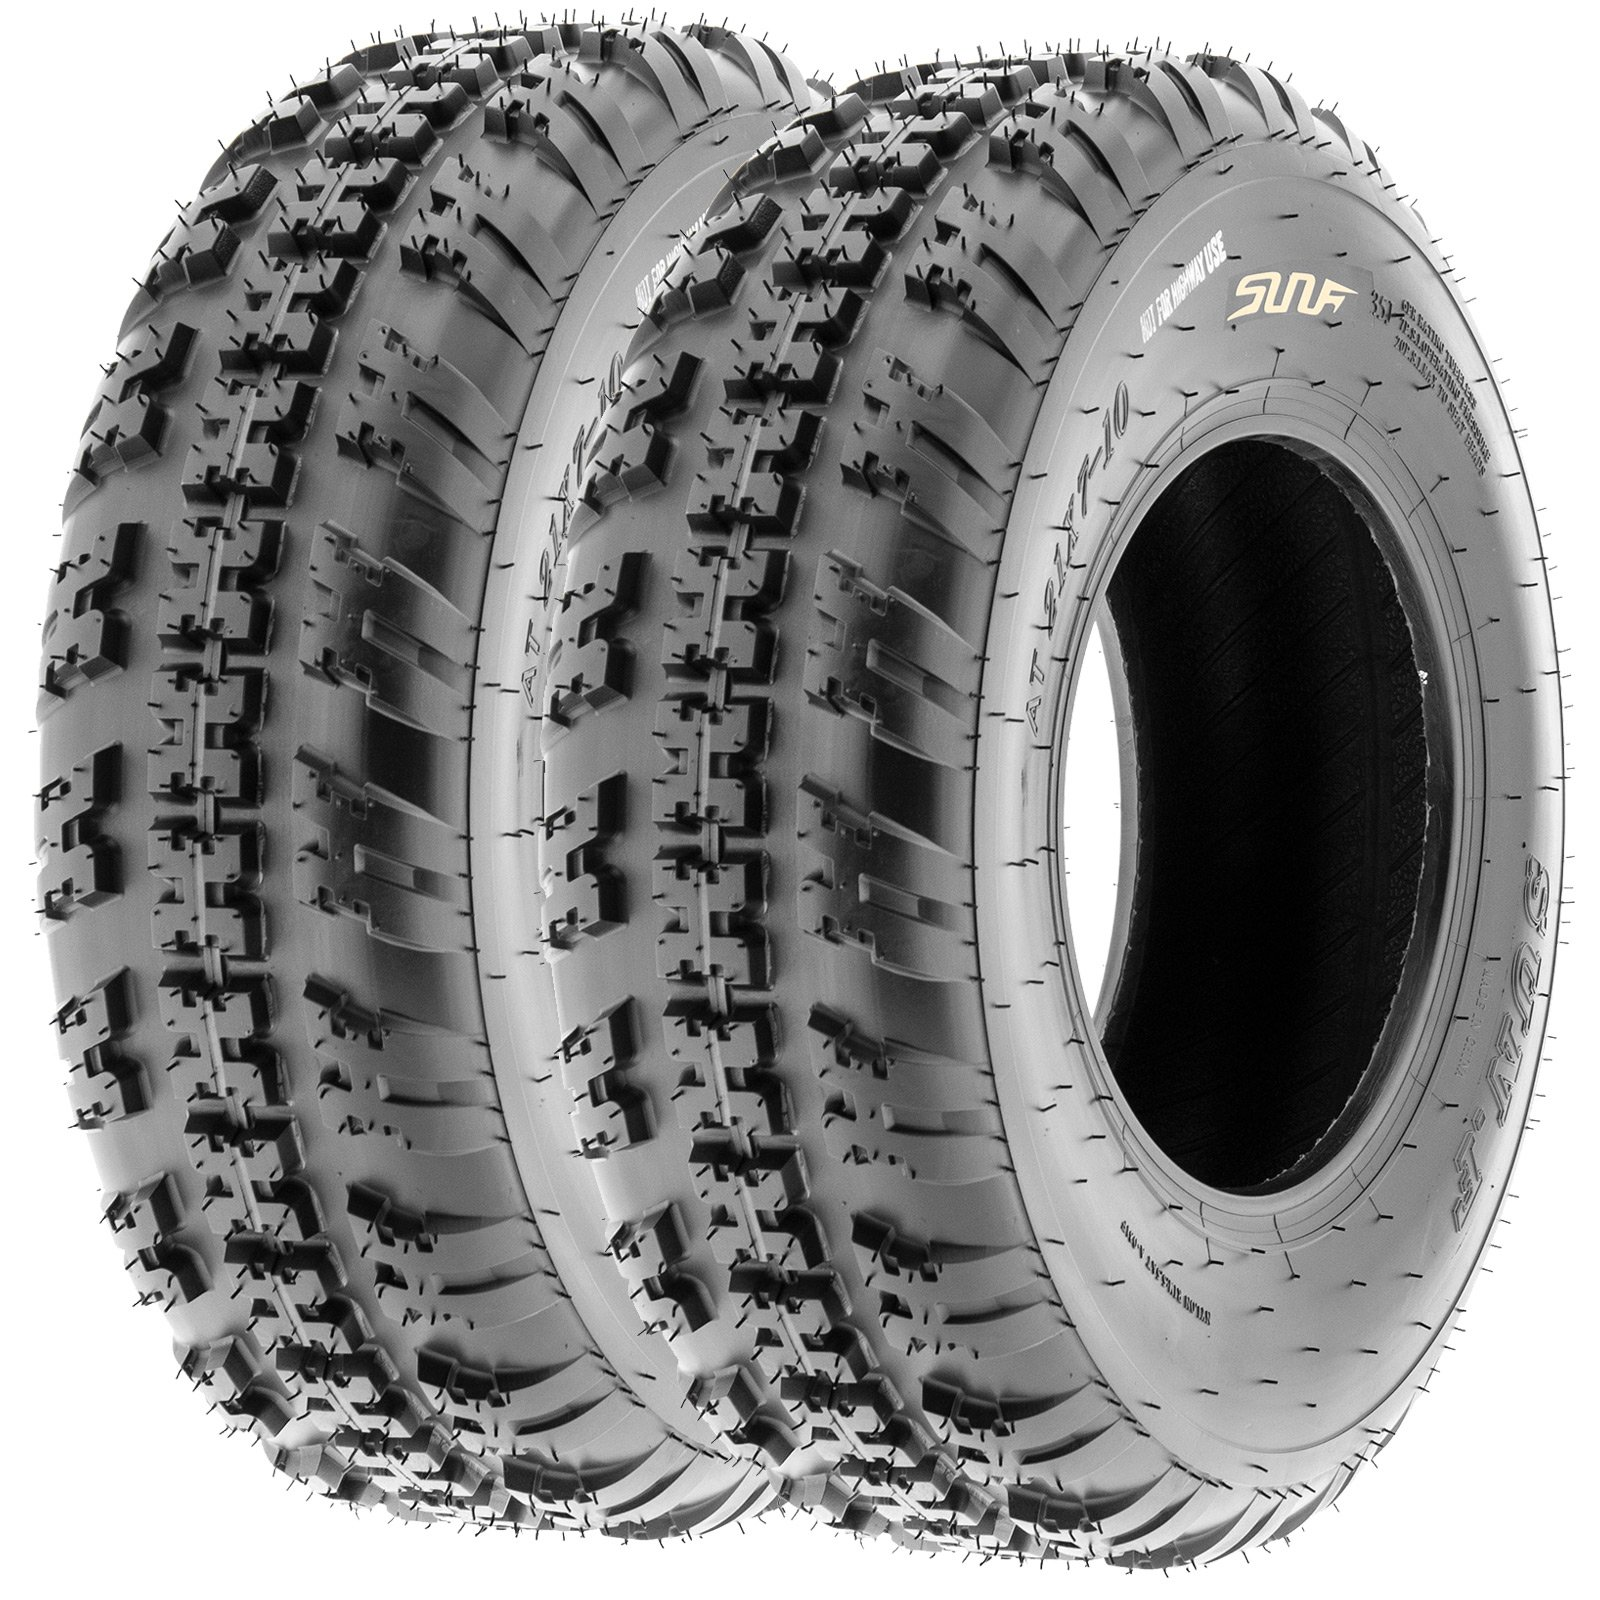 SunF Knobby Sport ATV Tires 20x6-10 & 18x10-8 4/6 PR A031 (Complete set of 4) by SunF (Image #3)